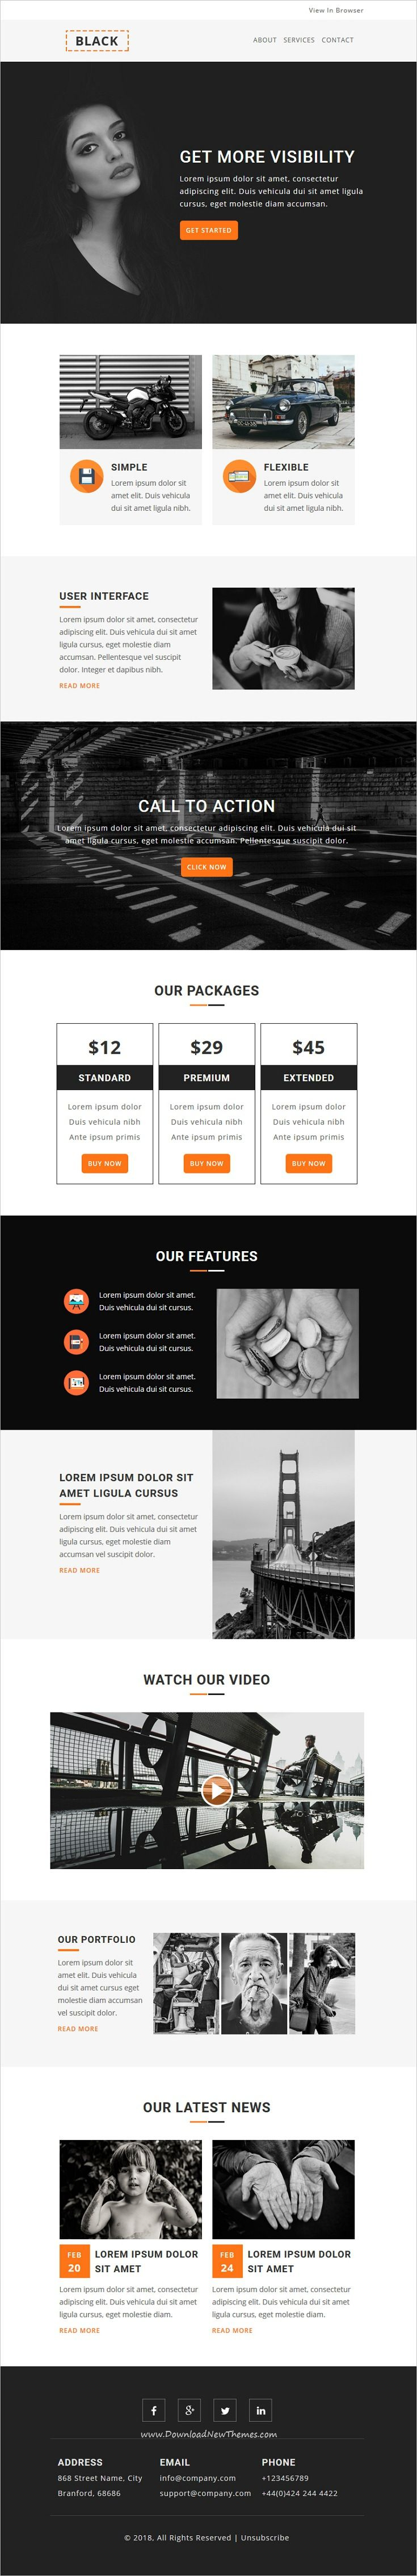 Black is clean and modern design 4in1 responsive email newsletter #template for #viral marketing with online stampready builder access and 50+ modules to live preview & download click on image or Visit 👆 #emaildesign #newsletterlayout